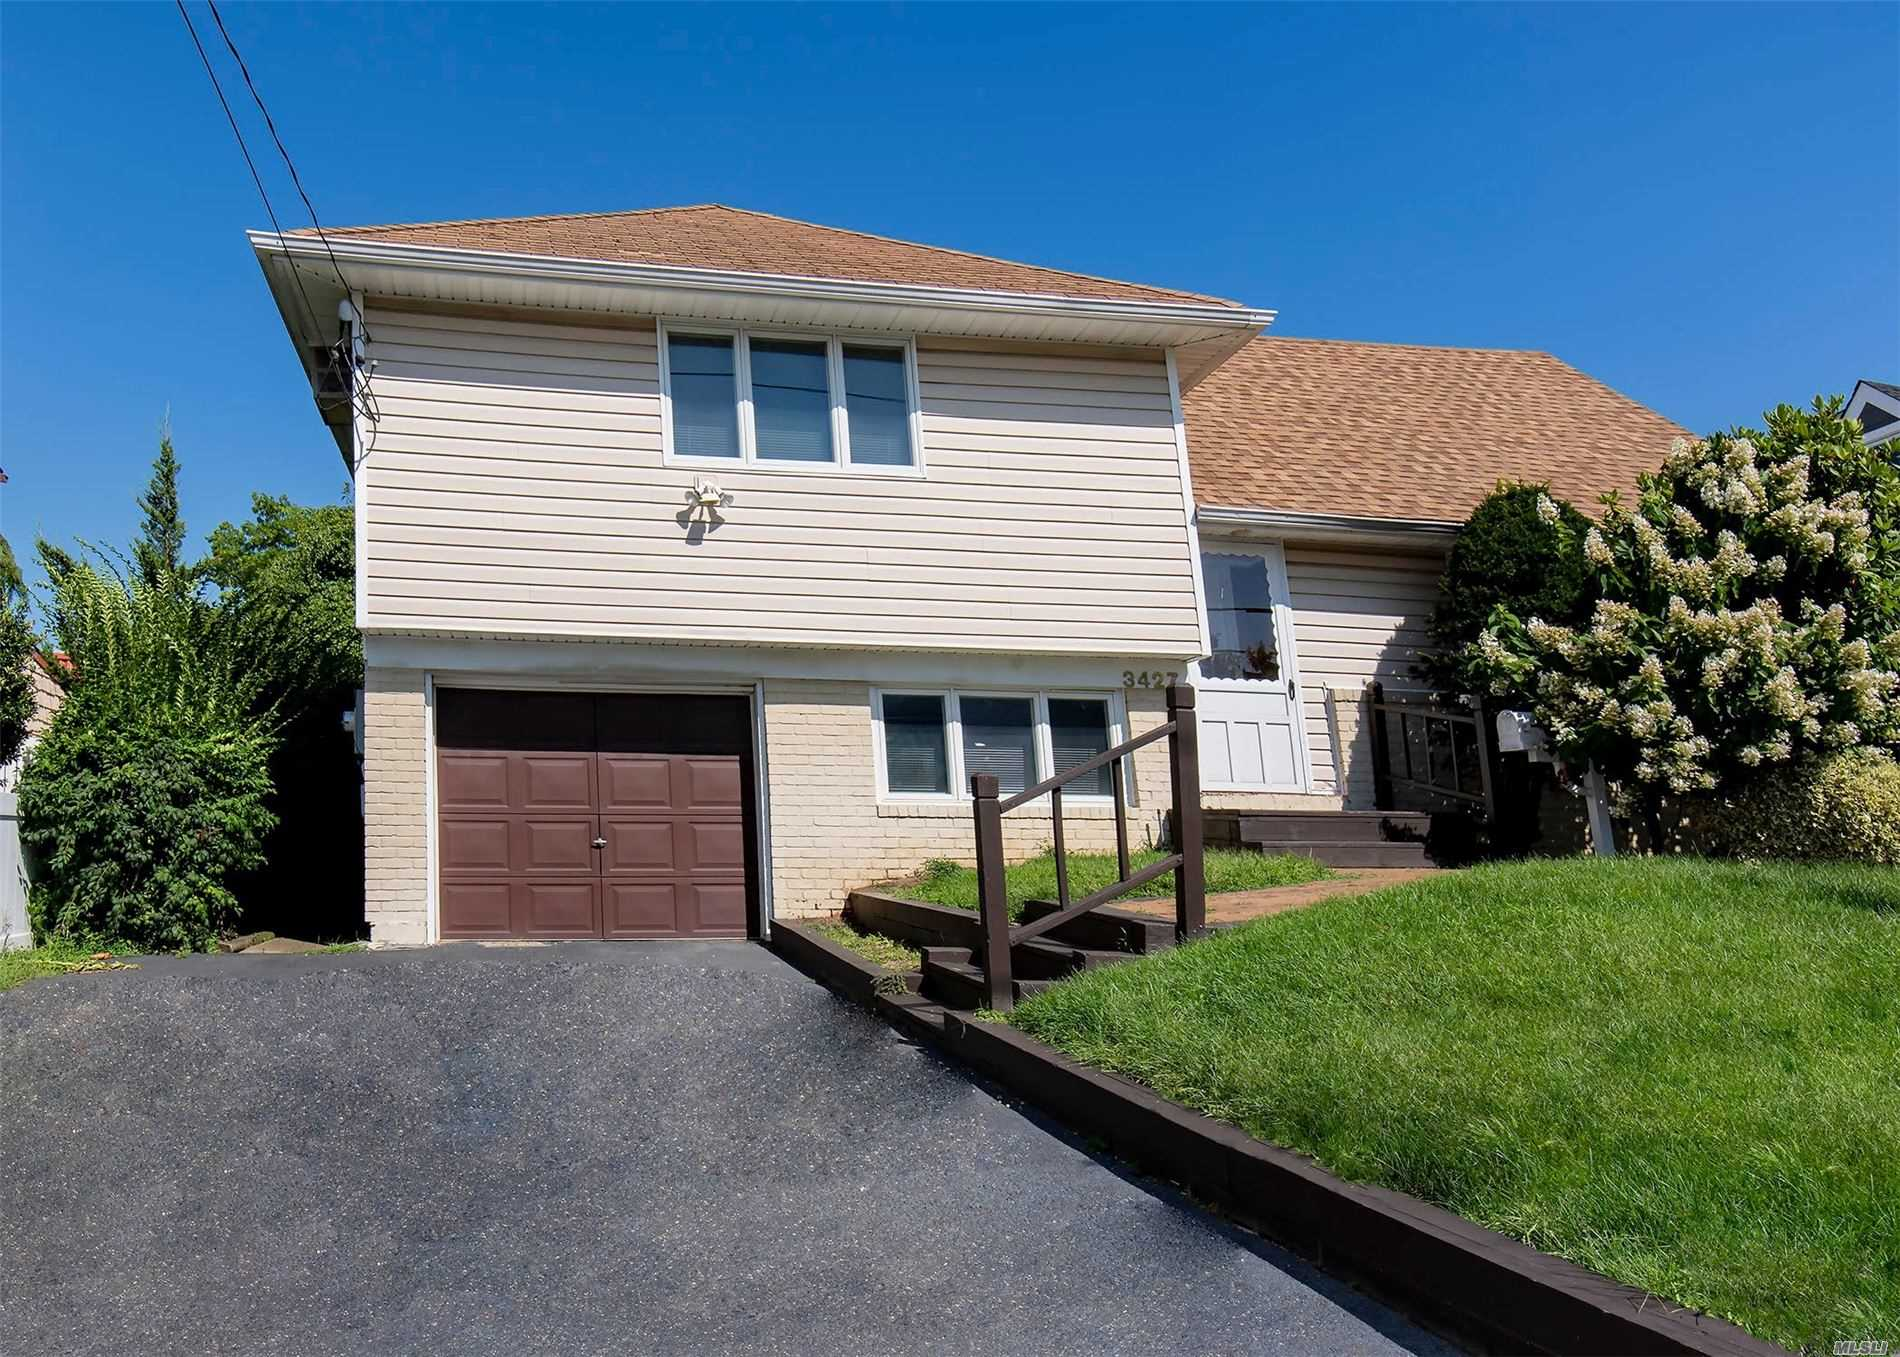 Oceanlea Split 3 Bedrooms, 2 Full Baths, Lower Level Office, Added On Den W/Sliding Door To Deck. Expanded Eik, Formal Dining Room, Living Room. Inground Sprinklers, New Oil Tank. Close To Shopping. Public Transportation. Close To House Of Worship